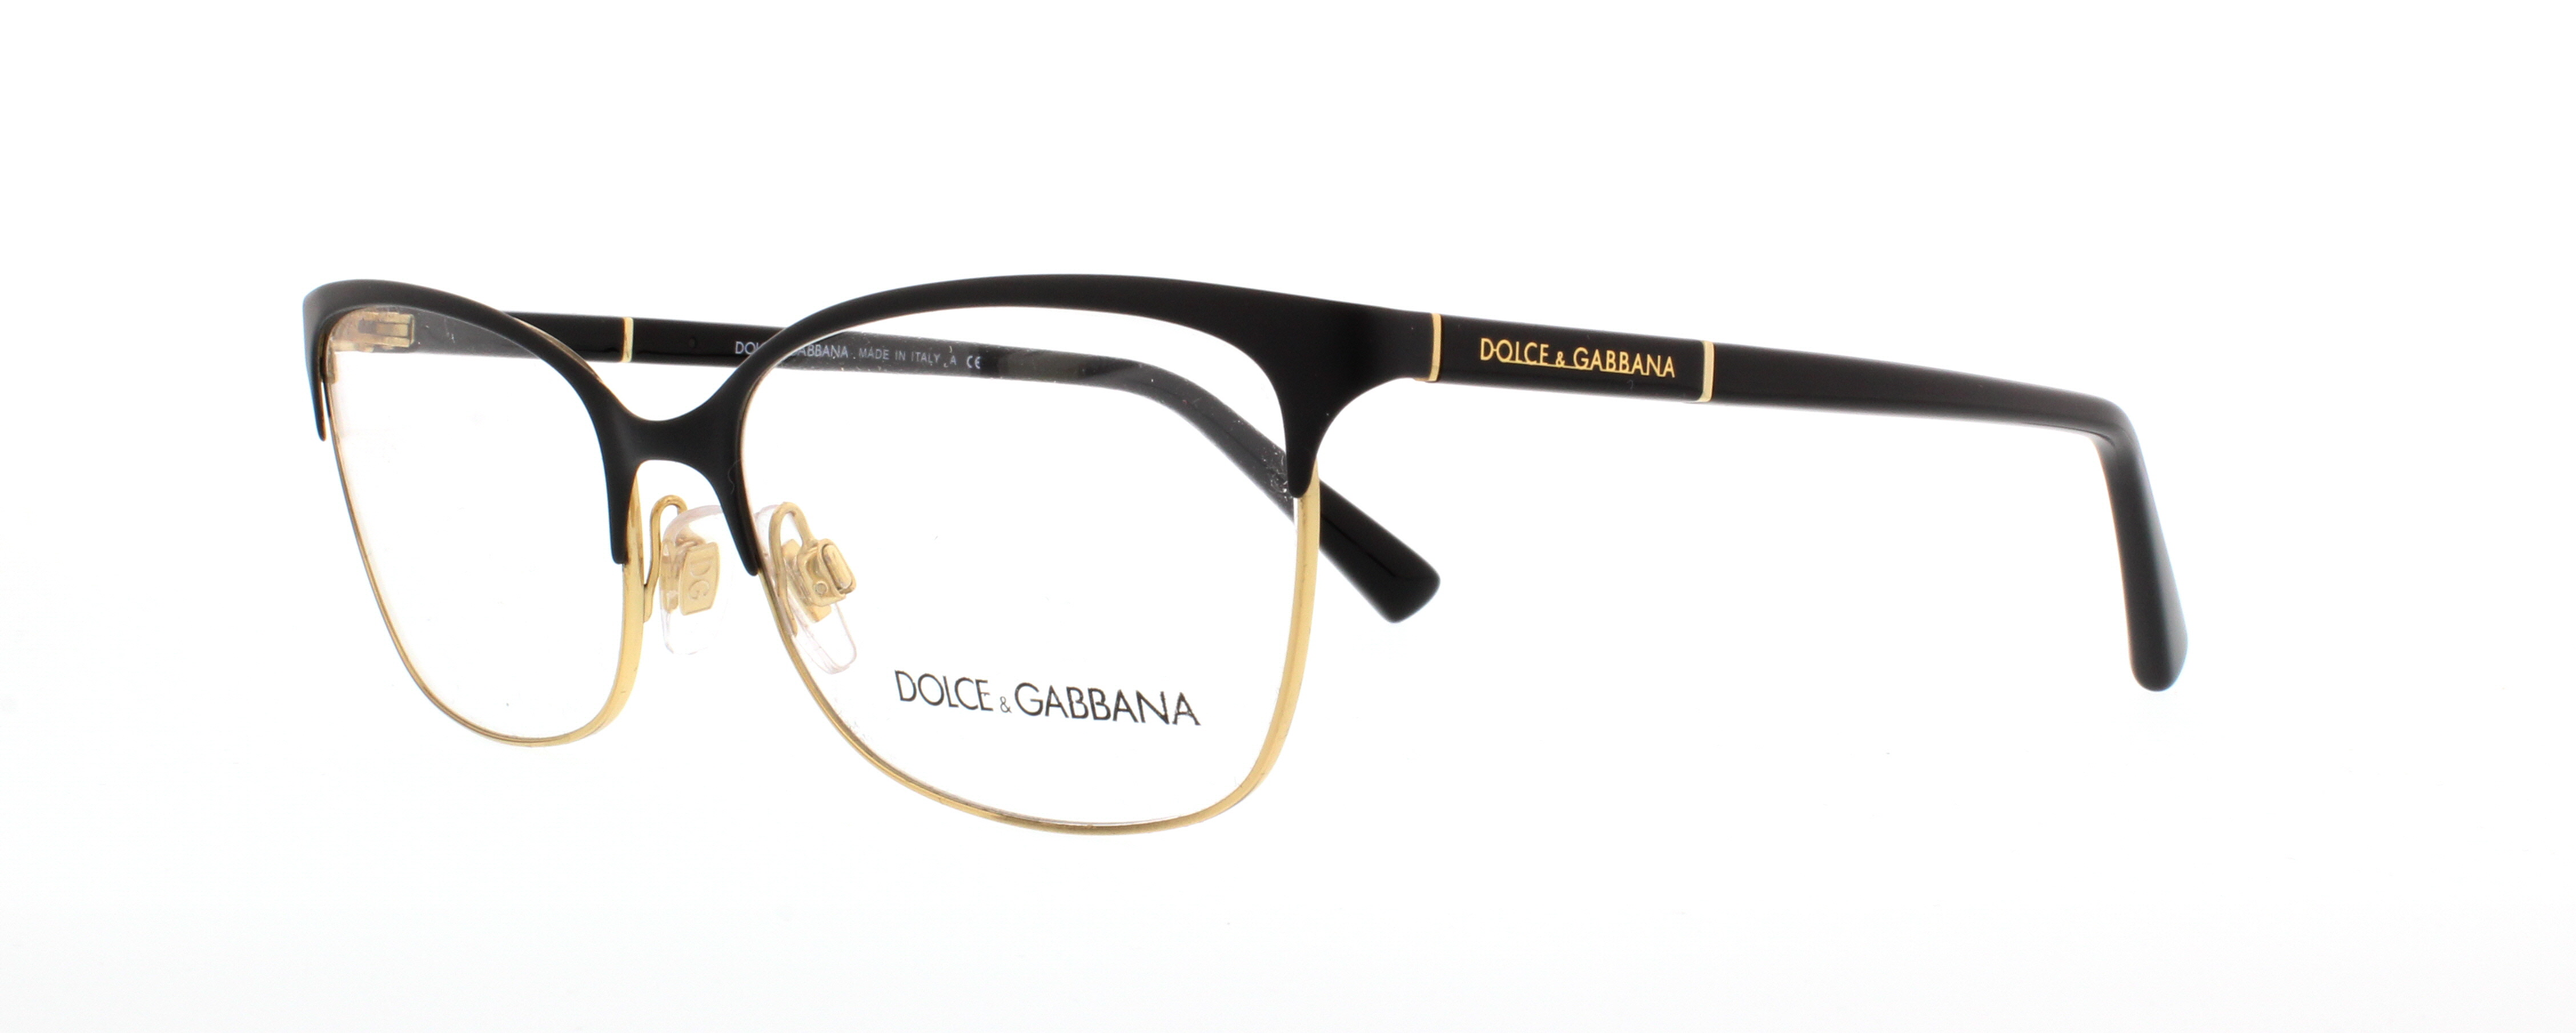 d36fffdc03 DOLCE   GABBANA Eyeglasses DG1268 025 Black Gold 54MM